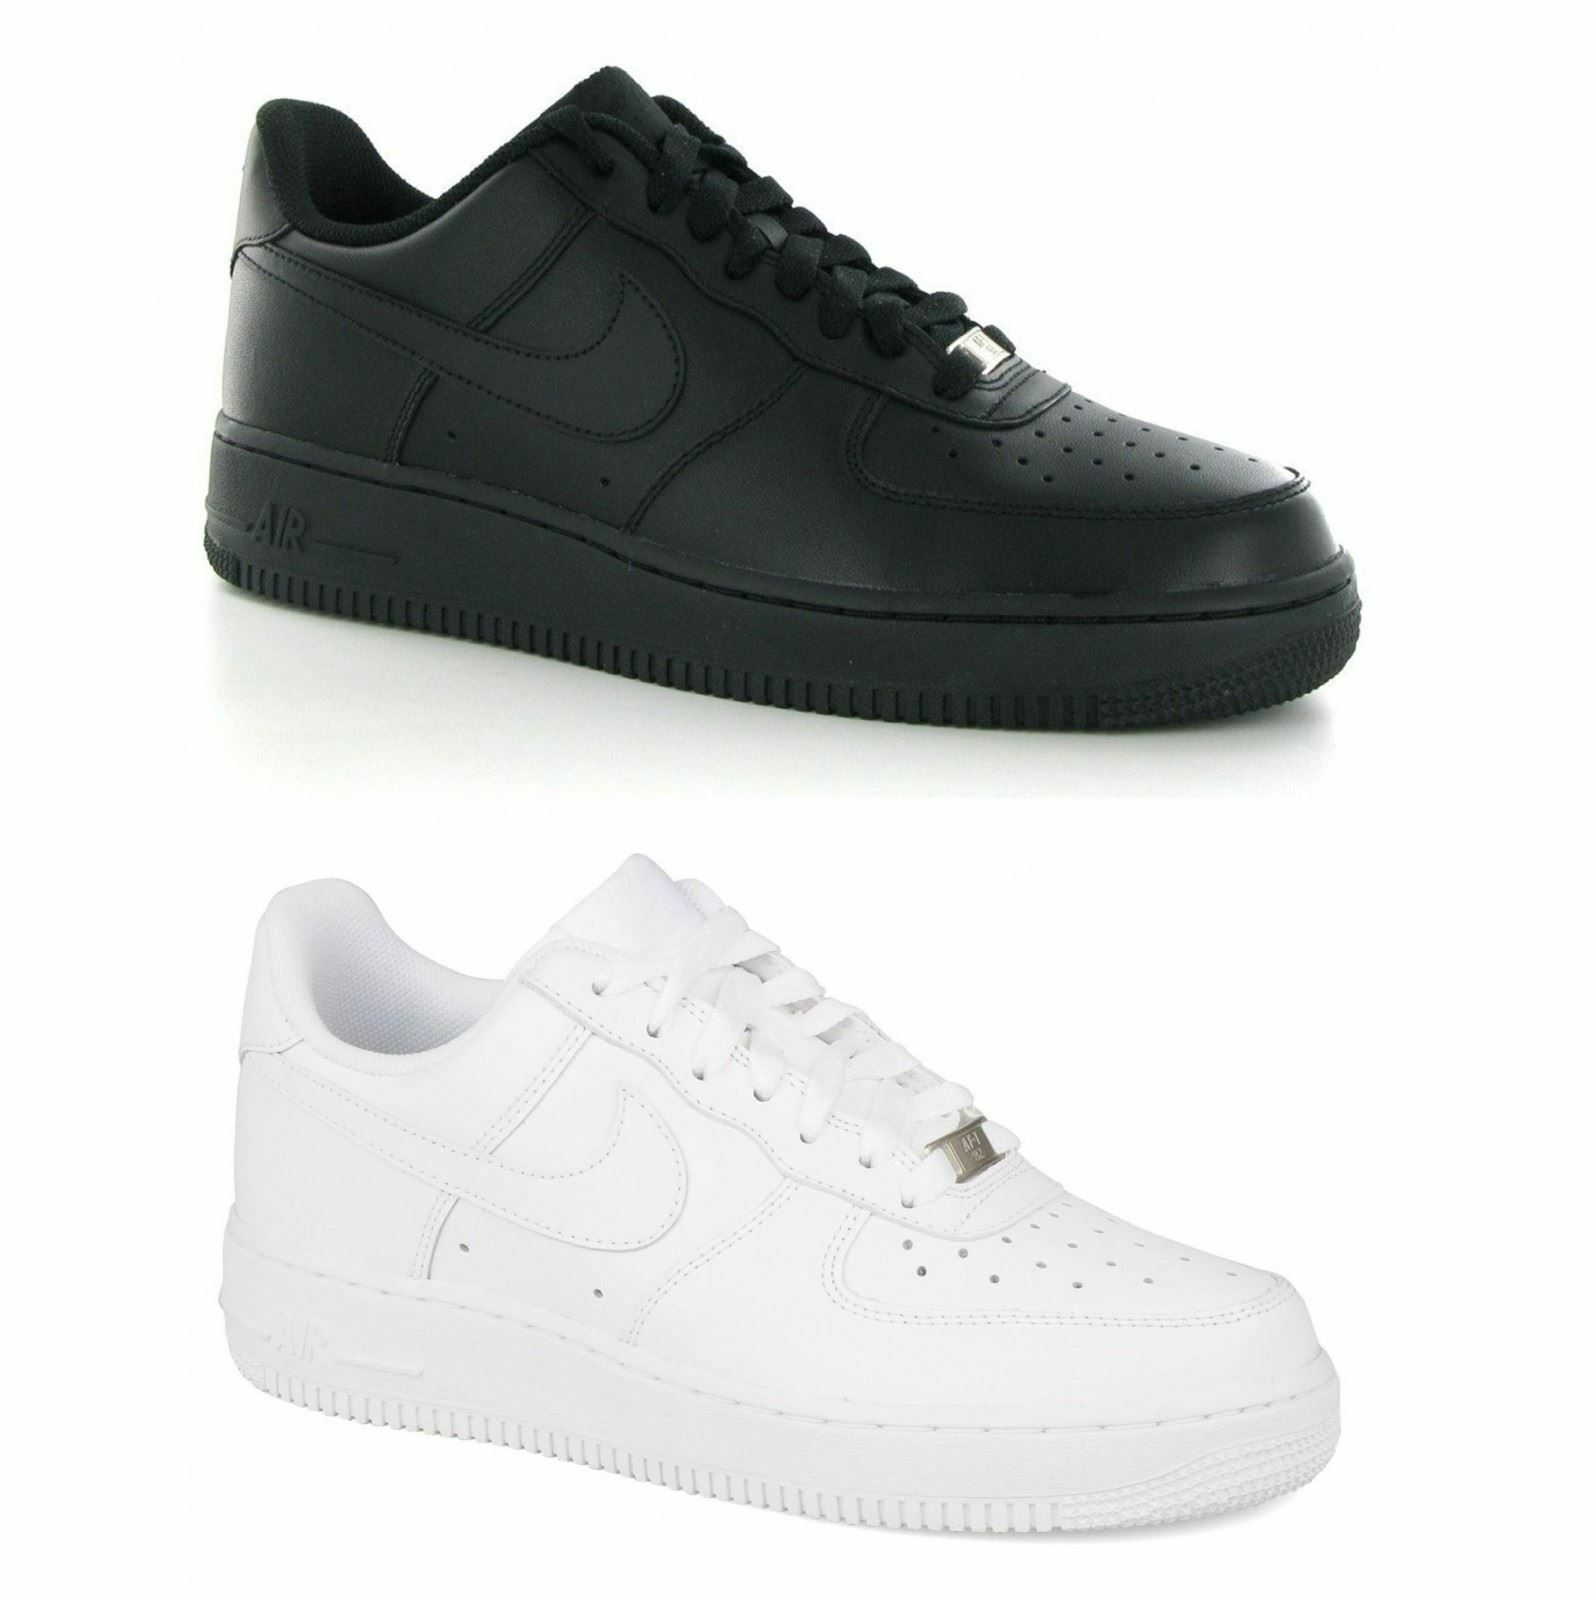 Nike Air Force 1 Low Leather Mens Trainers